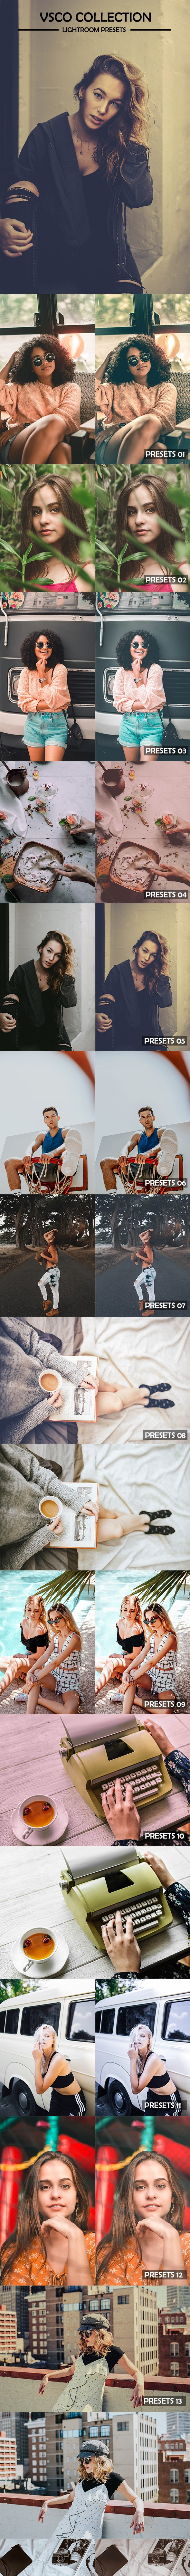 Vsco Cam Filters Lightroom Presets - Lightroom Presets Add-ons